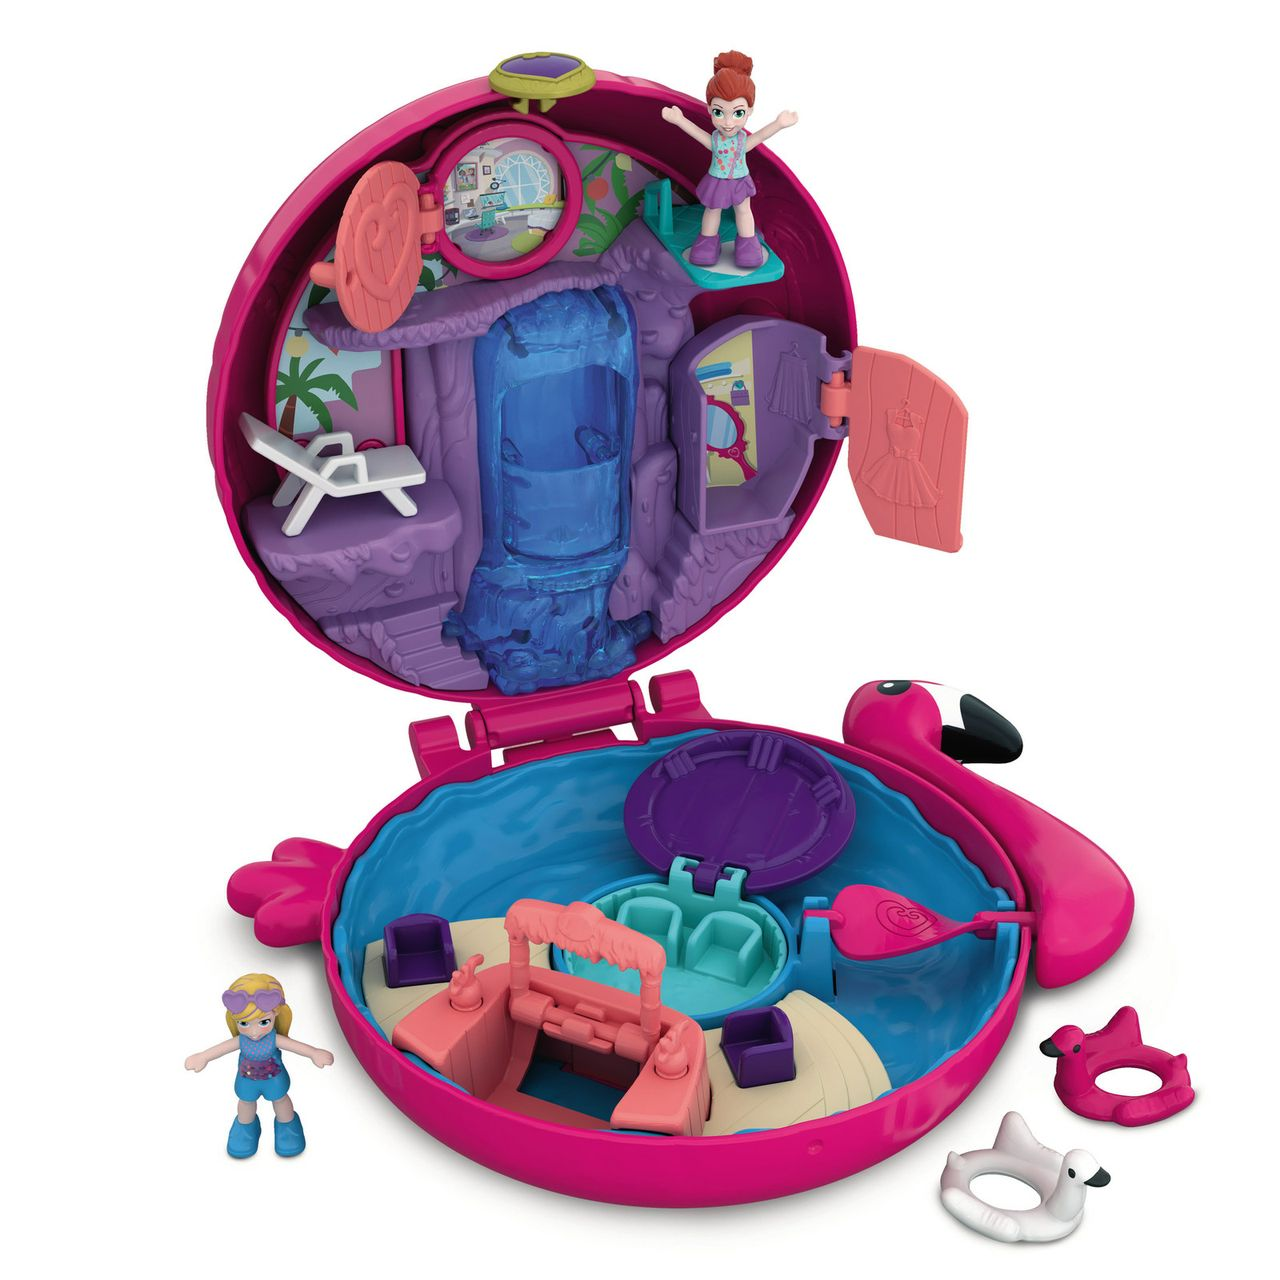 Mattel Polly Pocket Flamingo